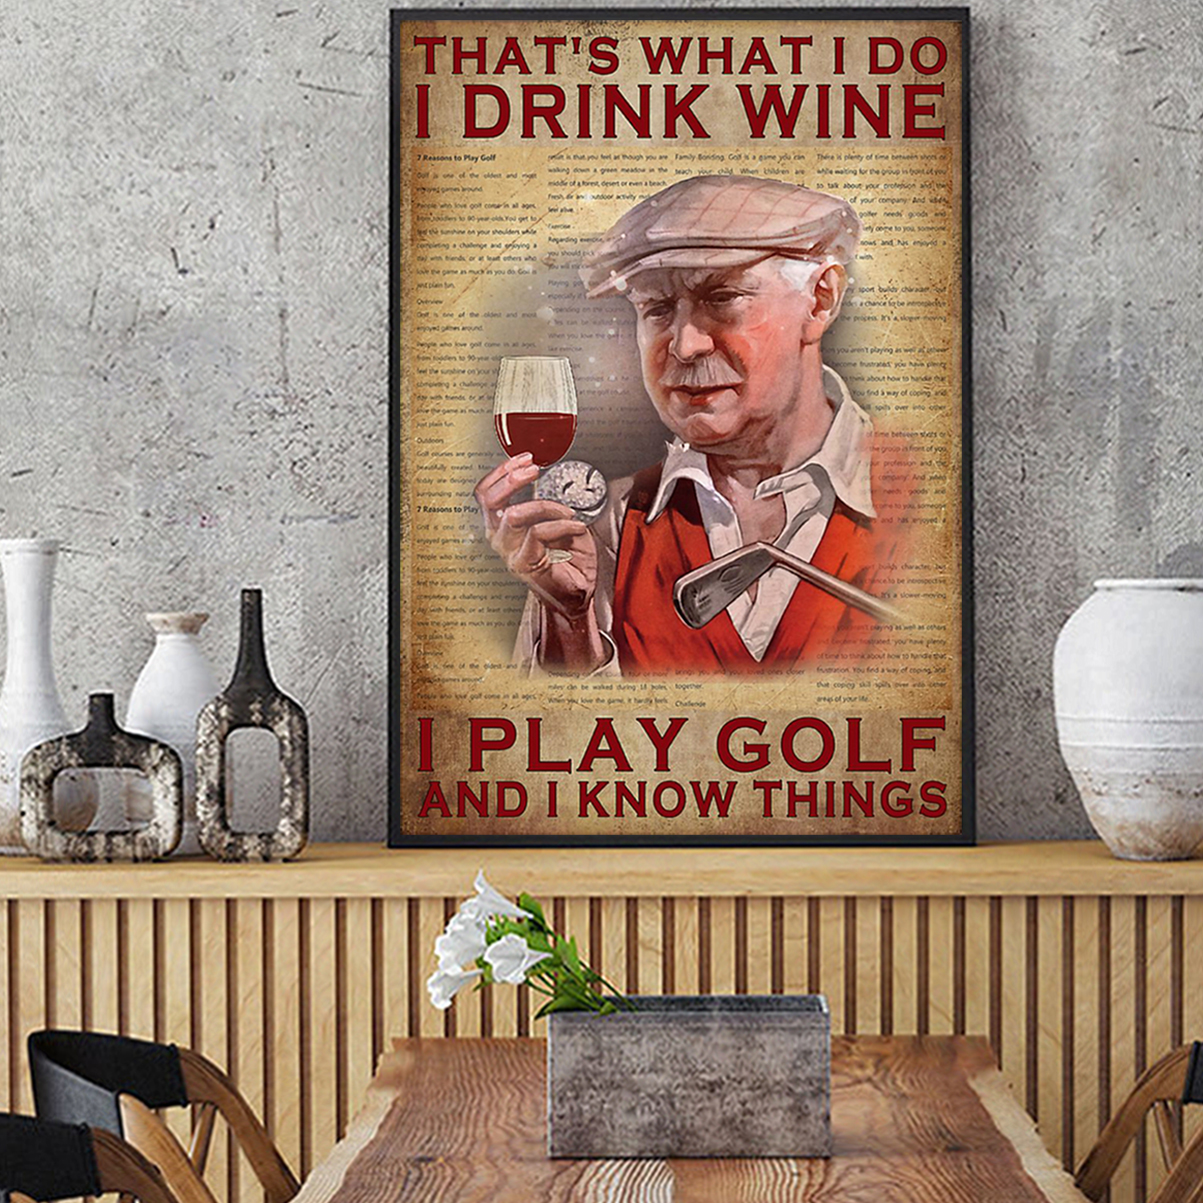 That's what I do I drink wine I play golf and I know things poster A3